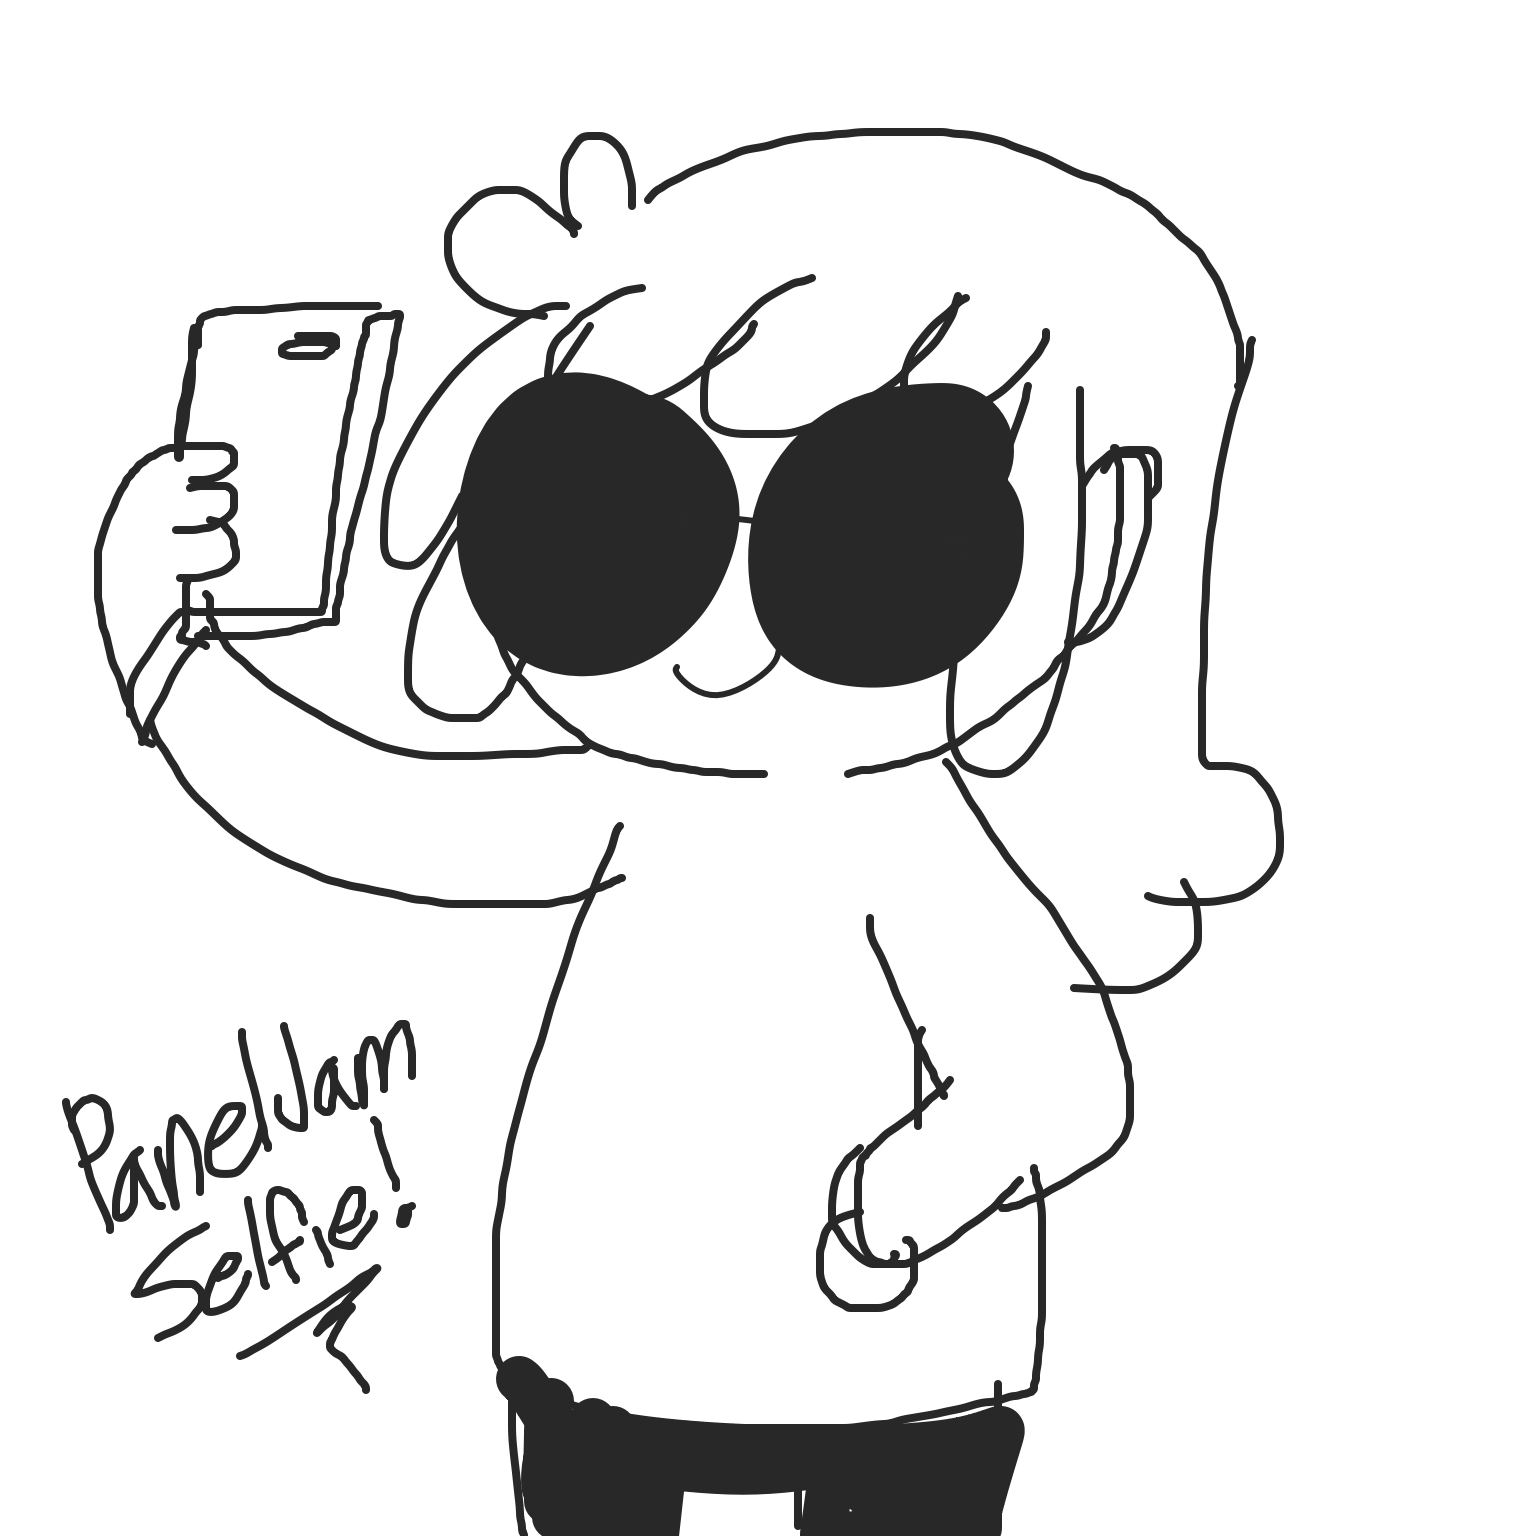 Liked webcomic Let's take a selfie!